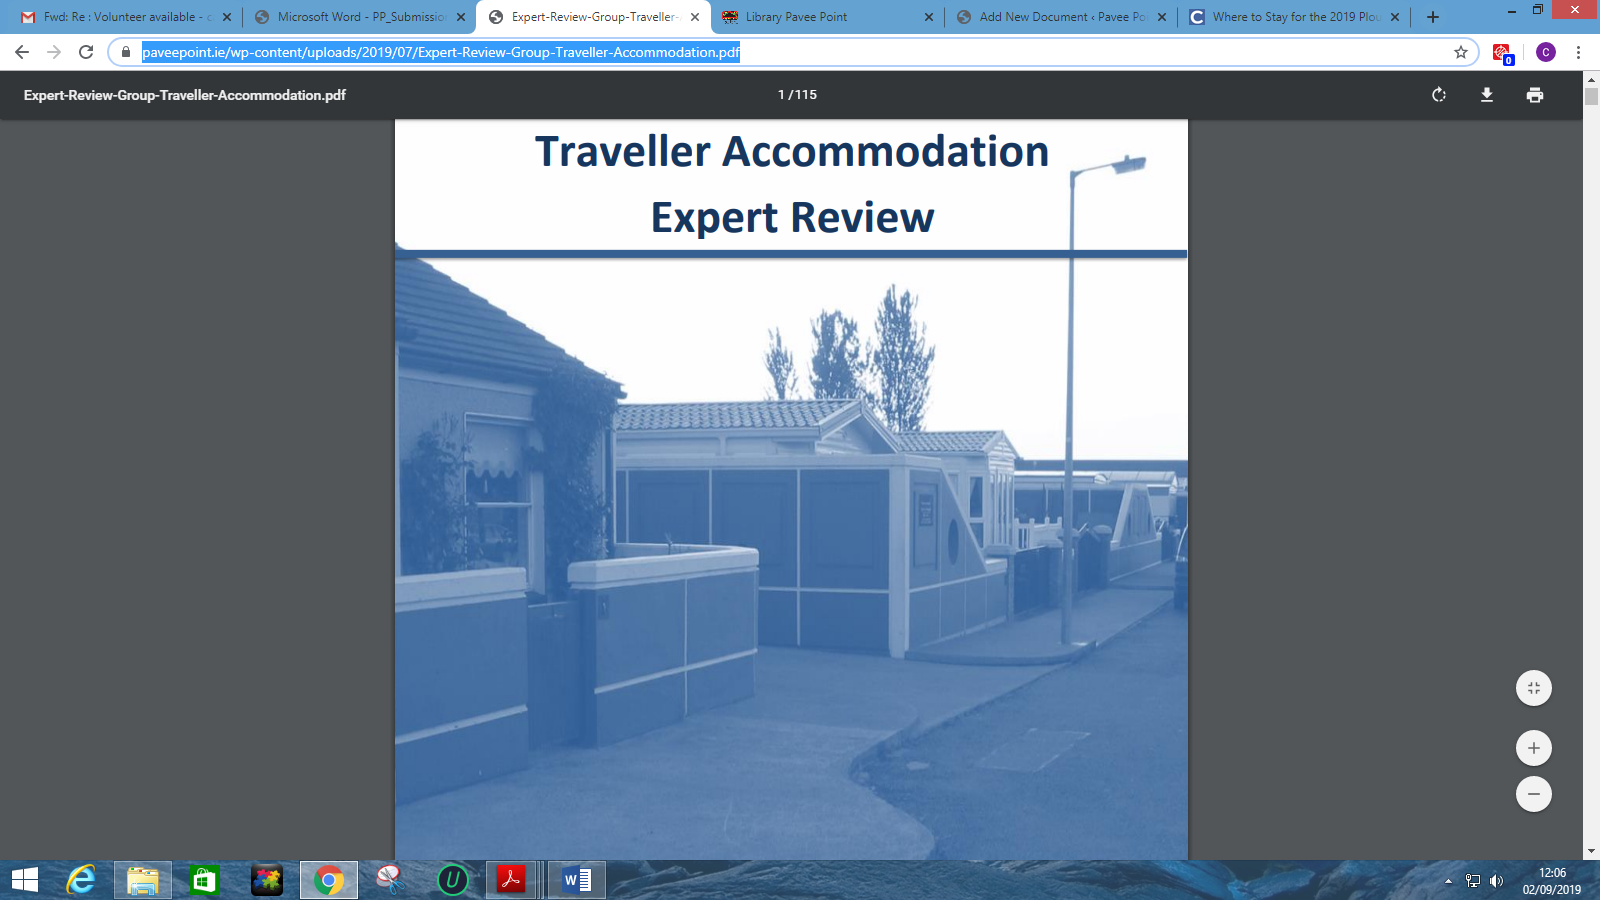 Traveller Accommodation Expert Review 2019